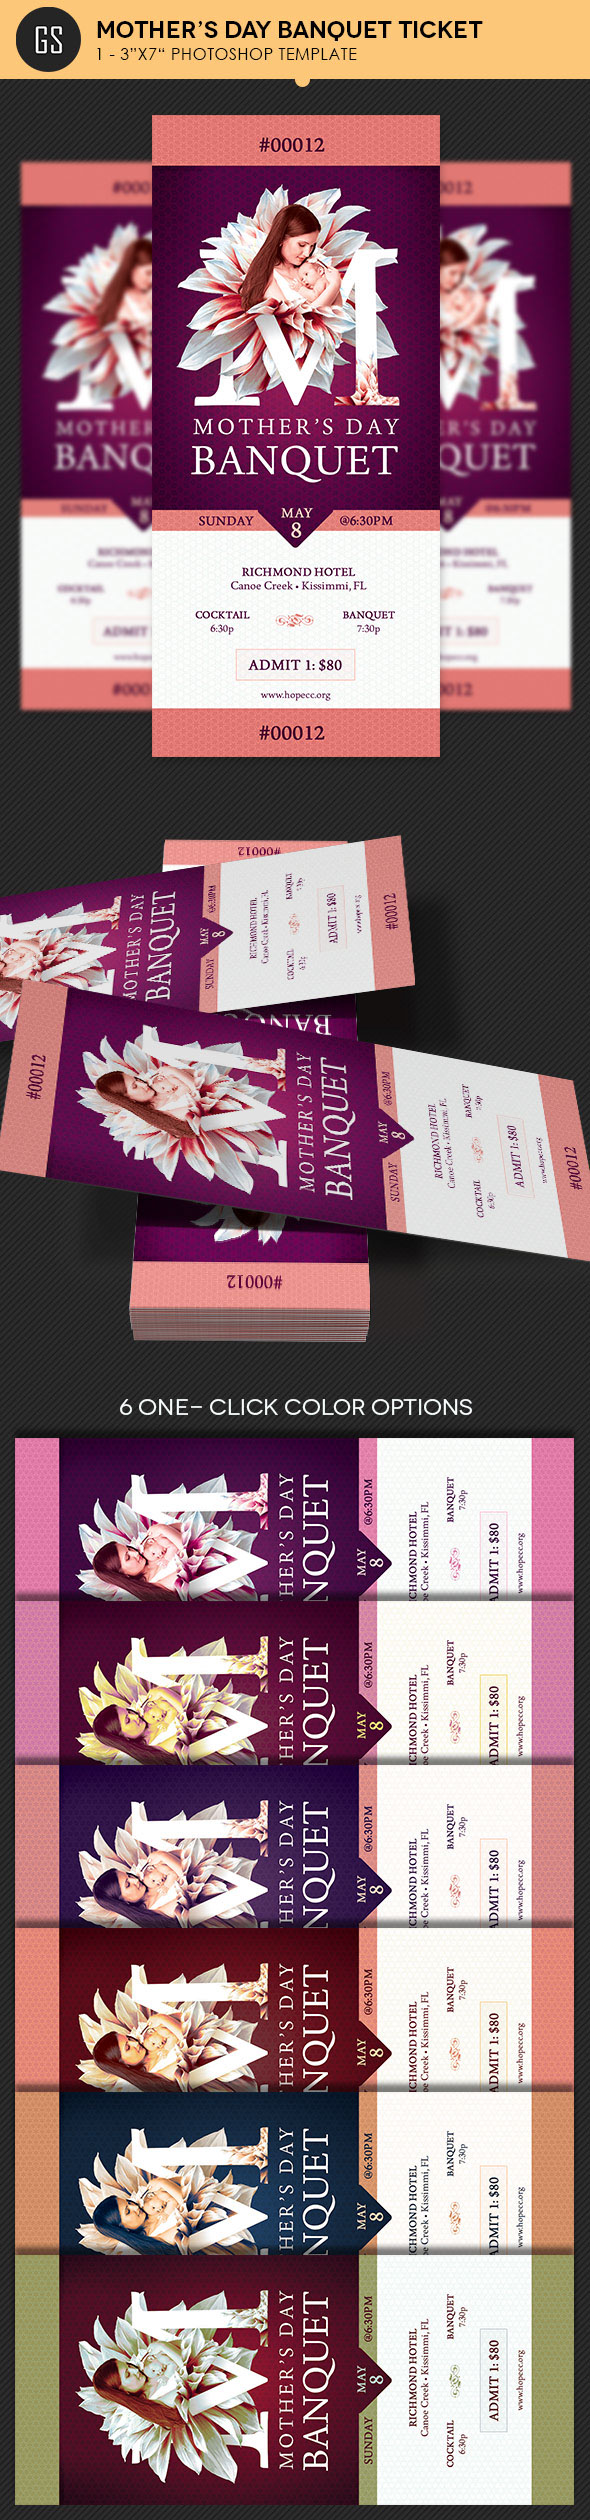 mothers day banquet ticket template on behance